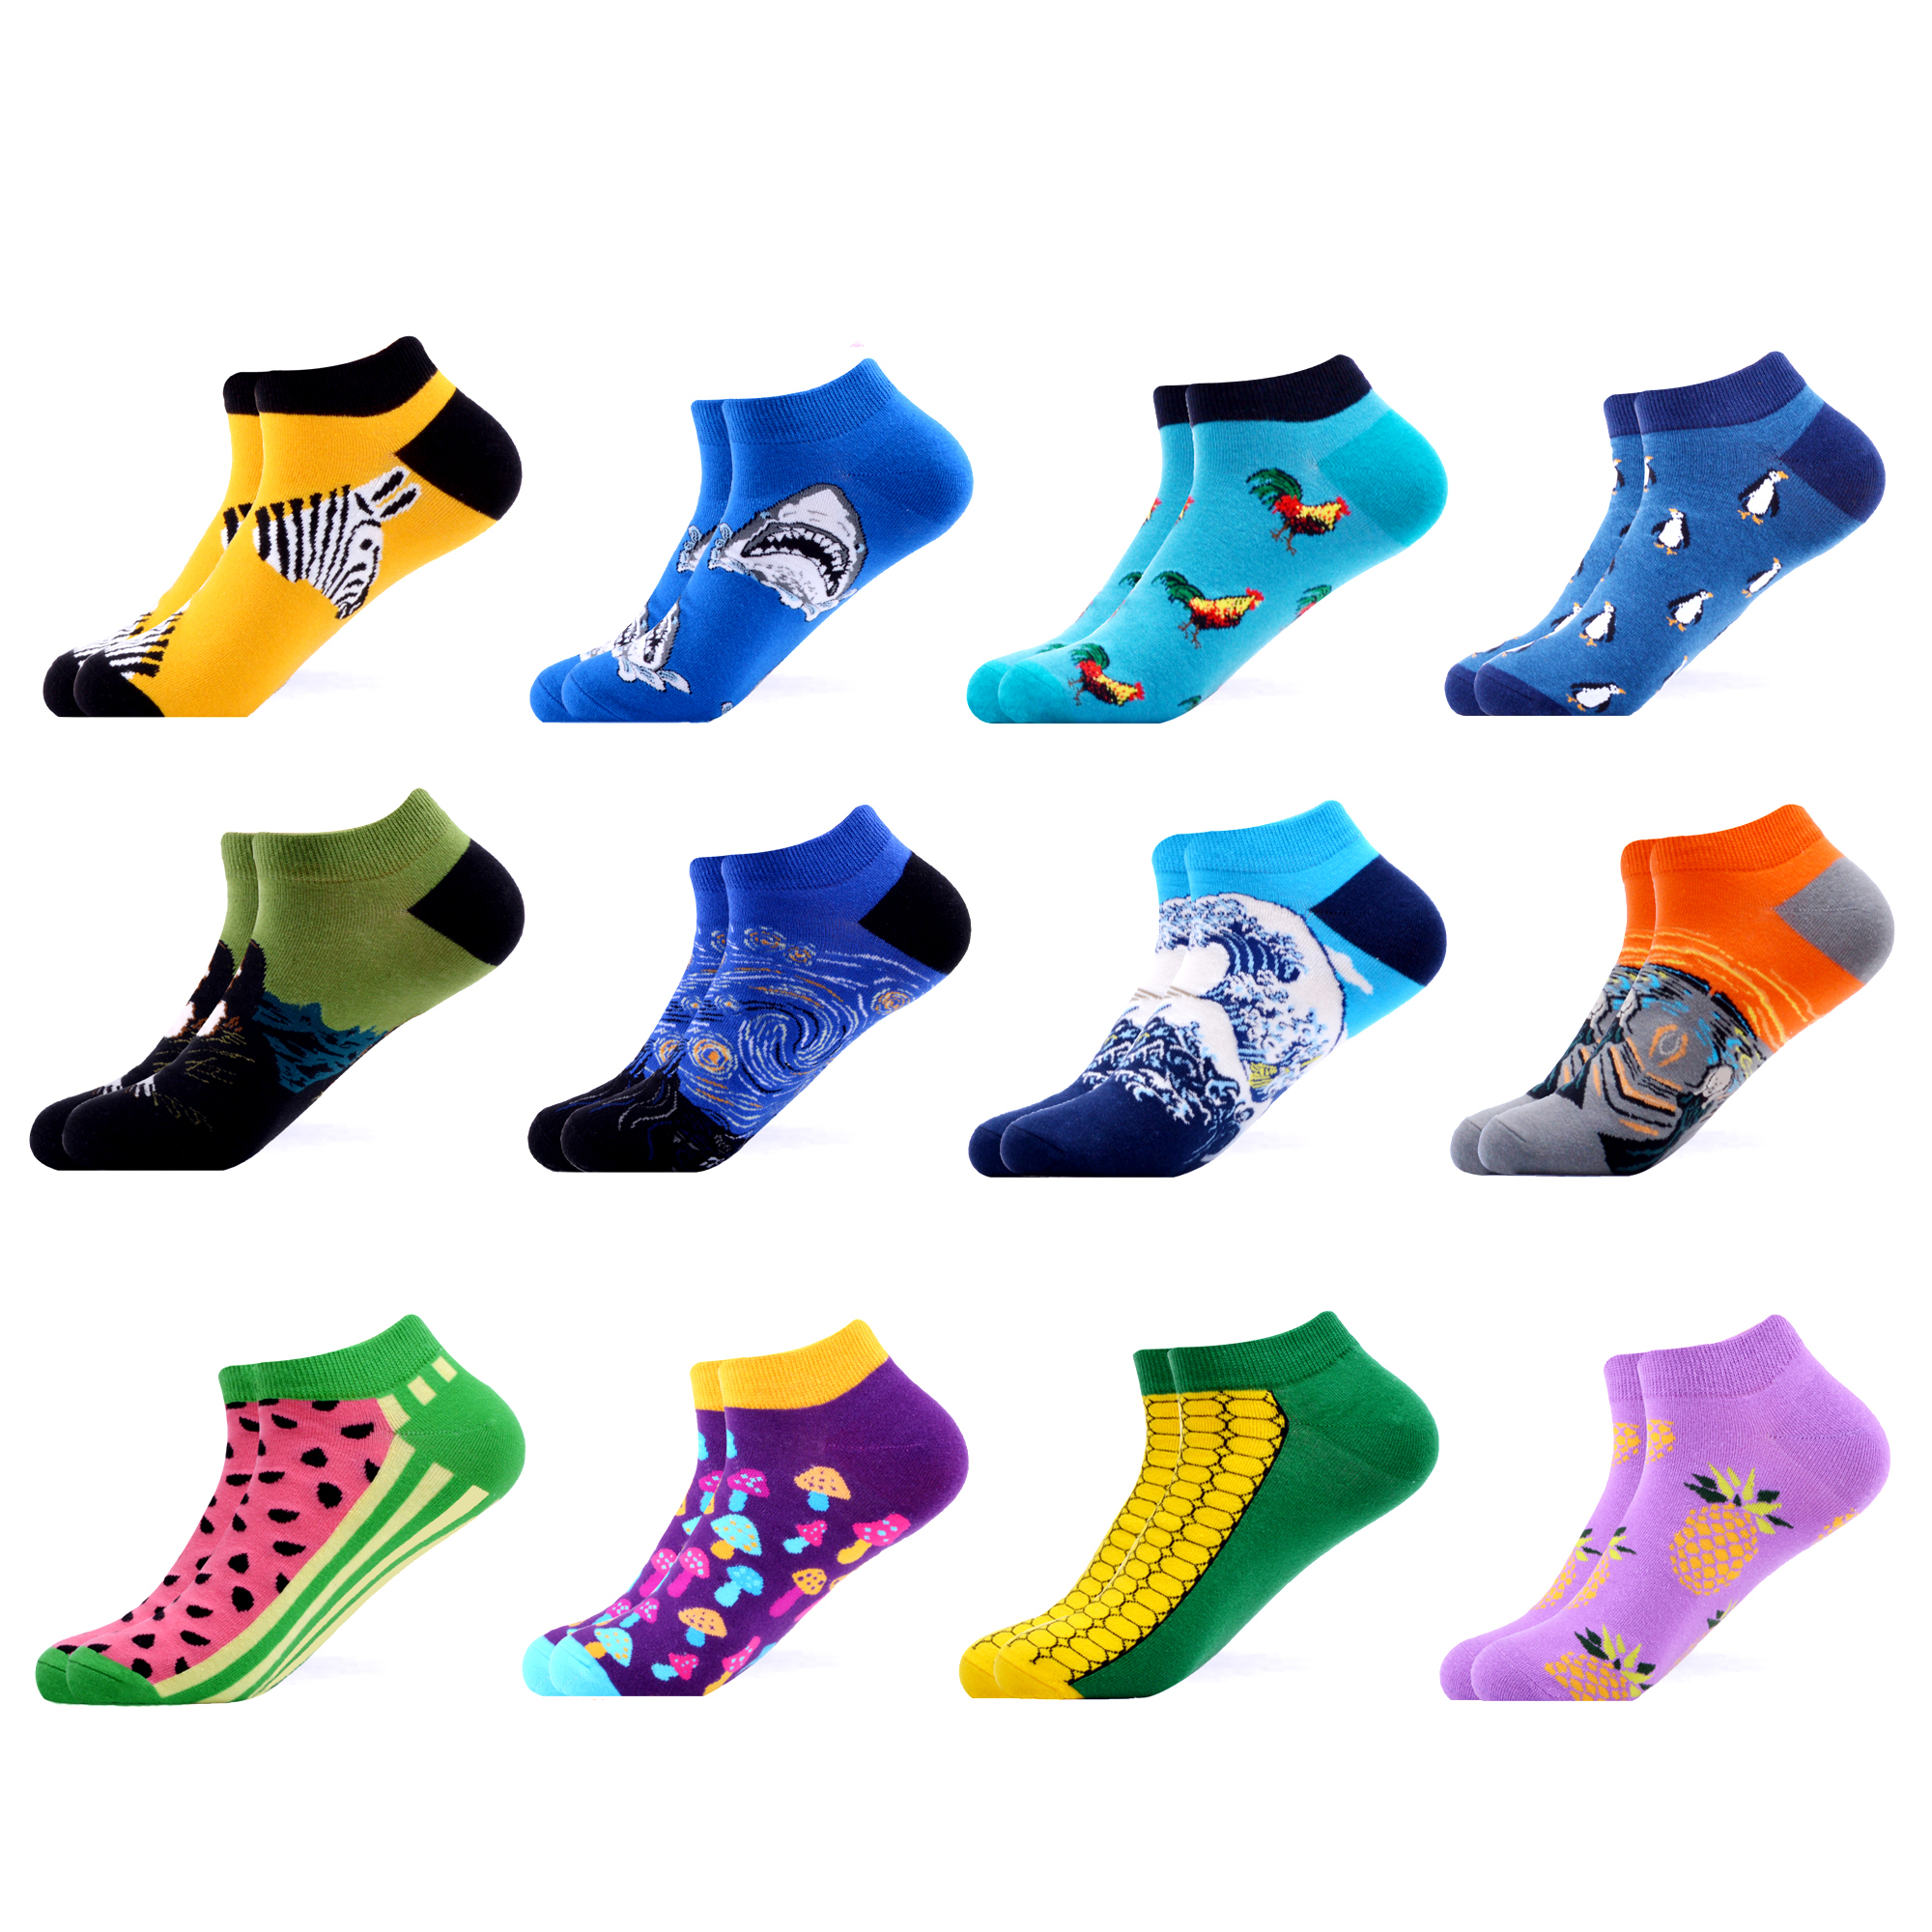 SANZETTI 12 Pairs/Lot Men's Casual Summer Colorful Ankle Socks Happy Combed Cotton Short Socks Novelty Harajuku Dress Boat Socks